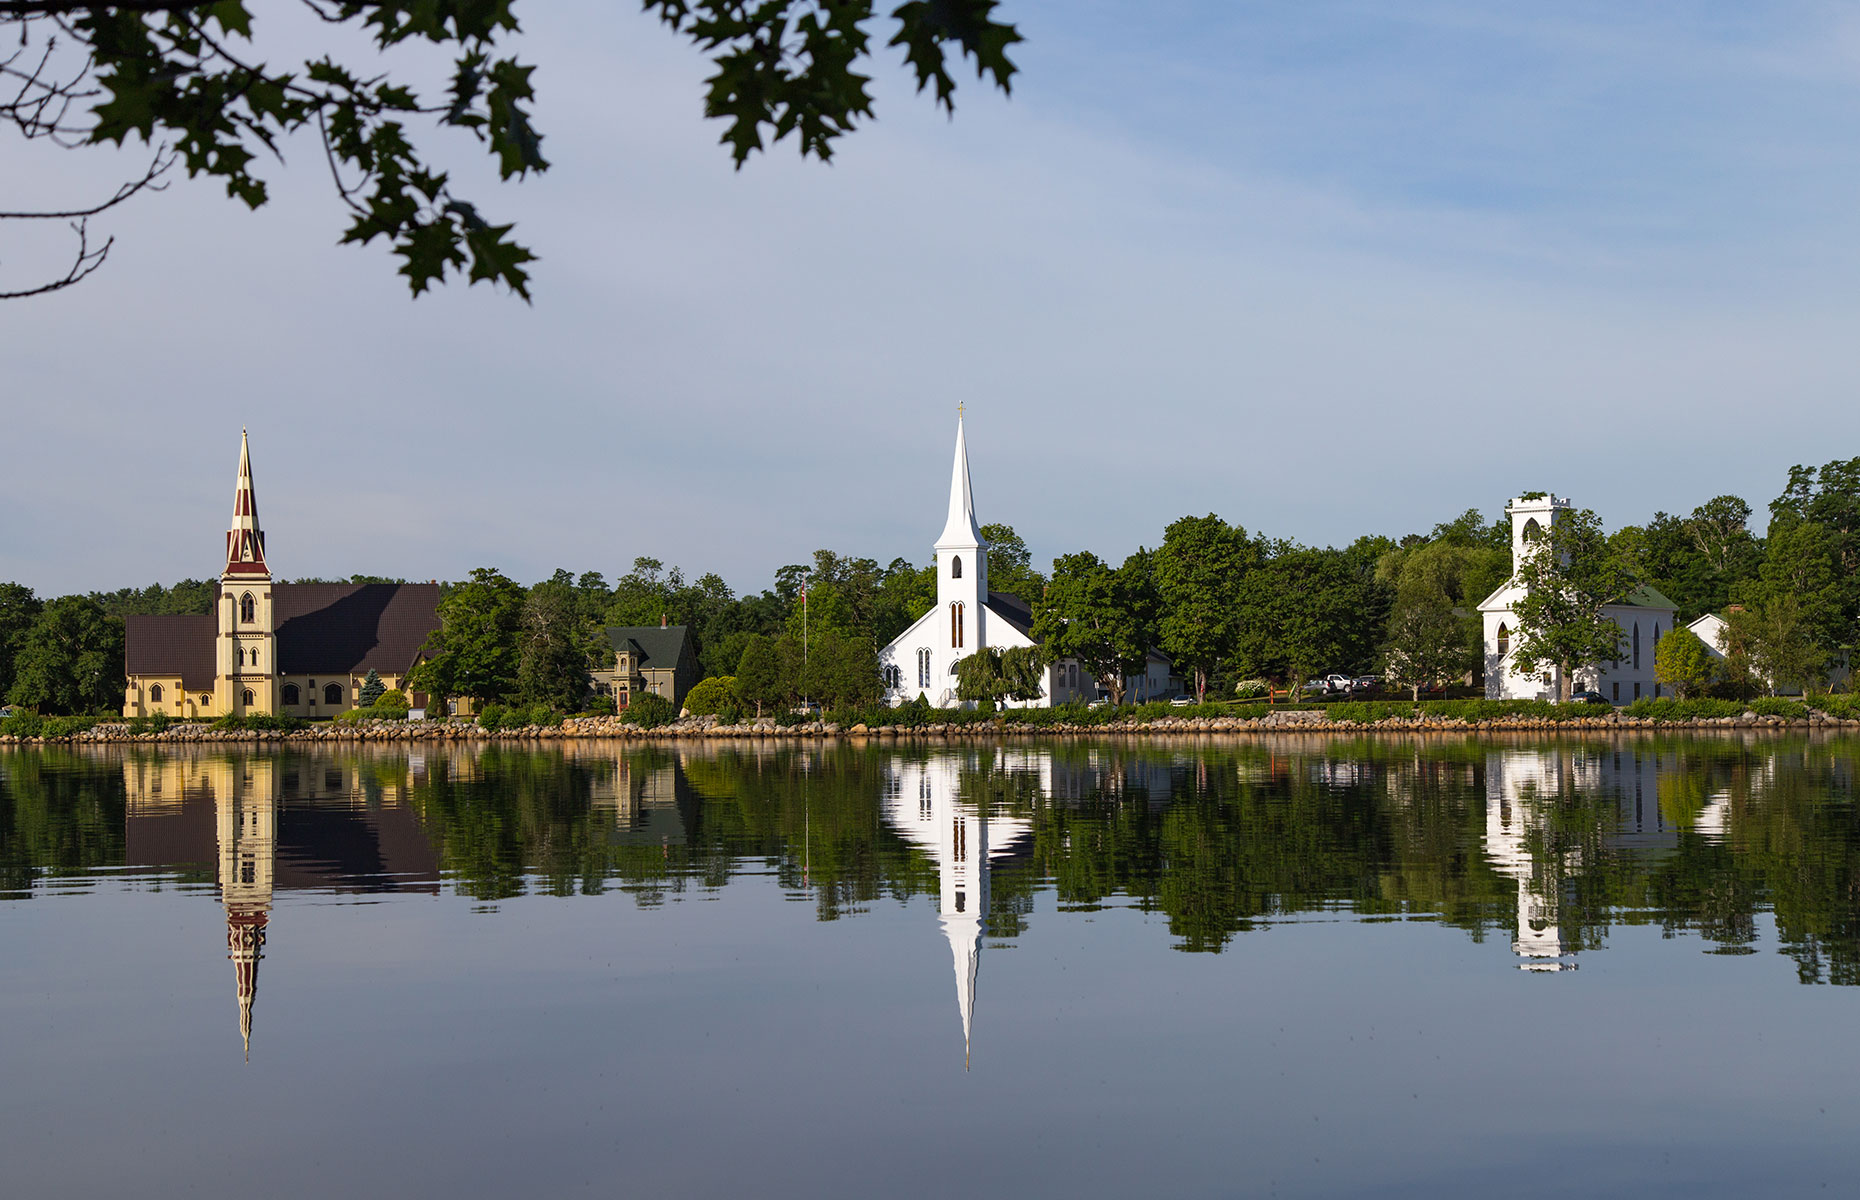 Mahone Bay's three churches is a famous viewing point in Nova Scotia